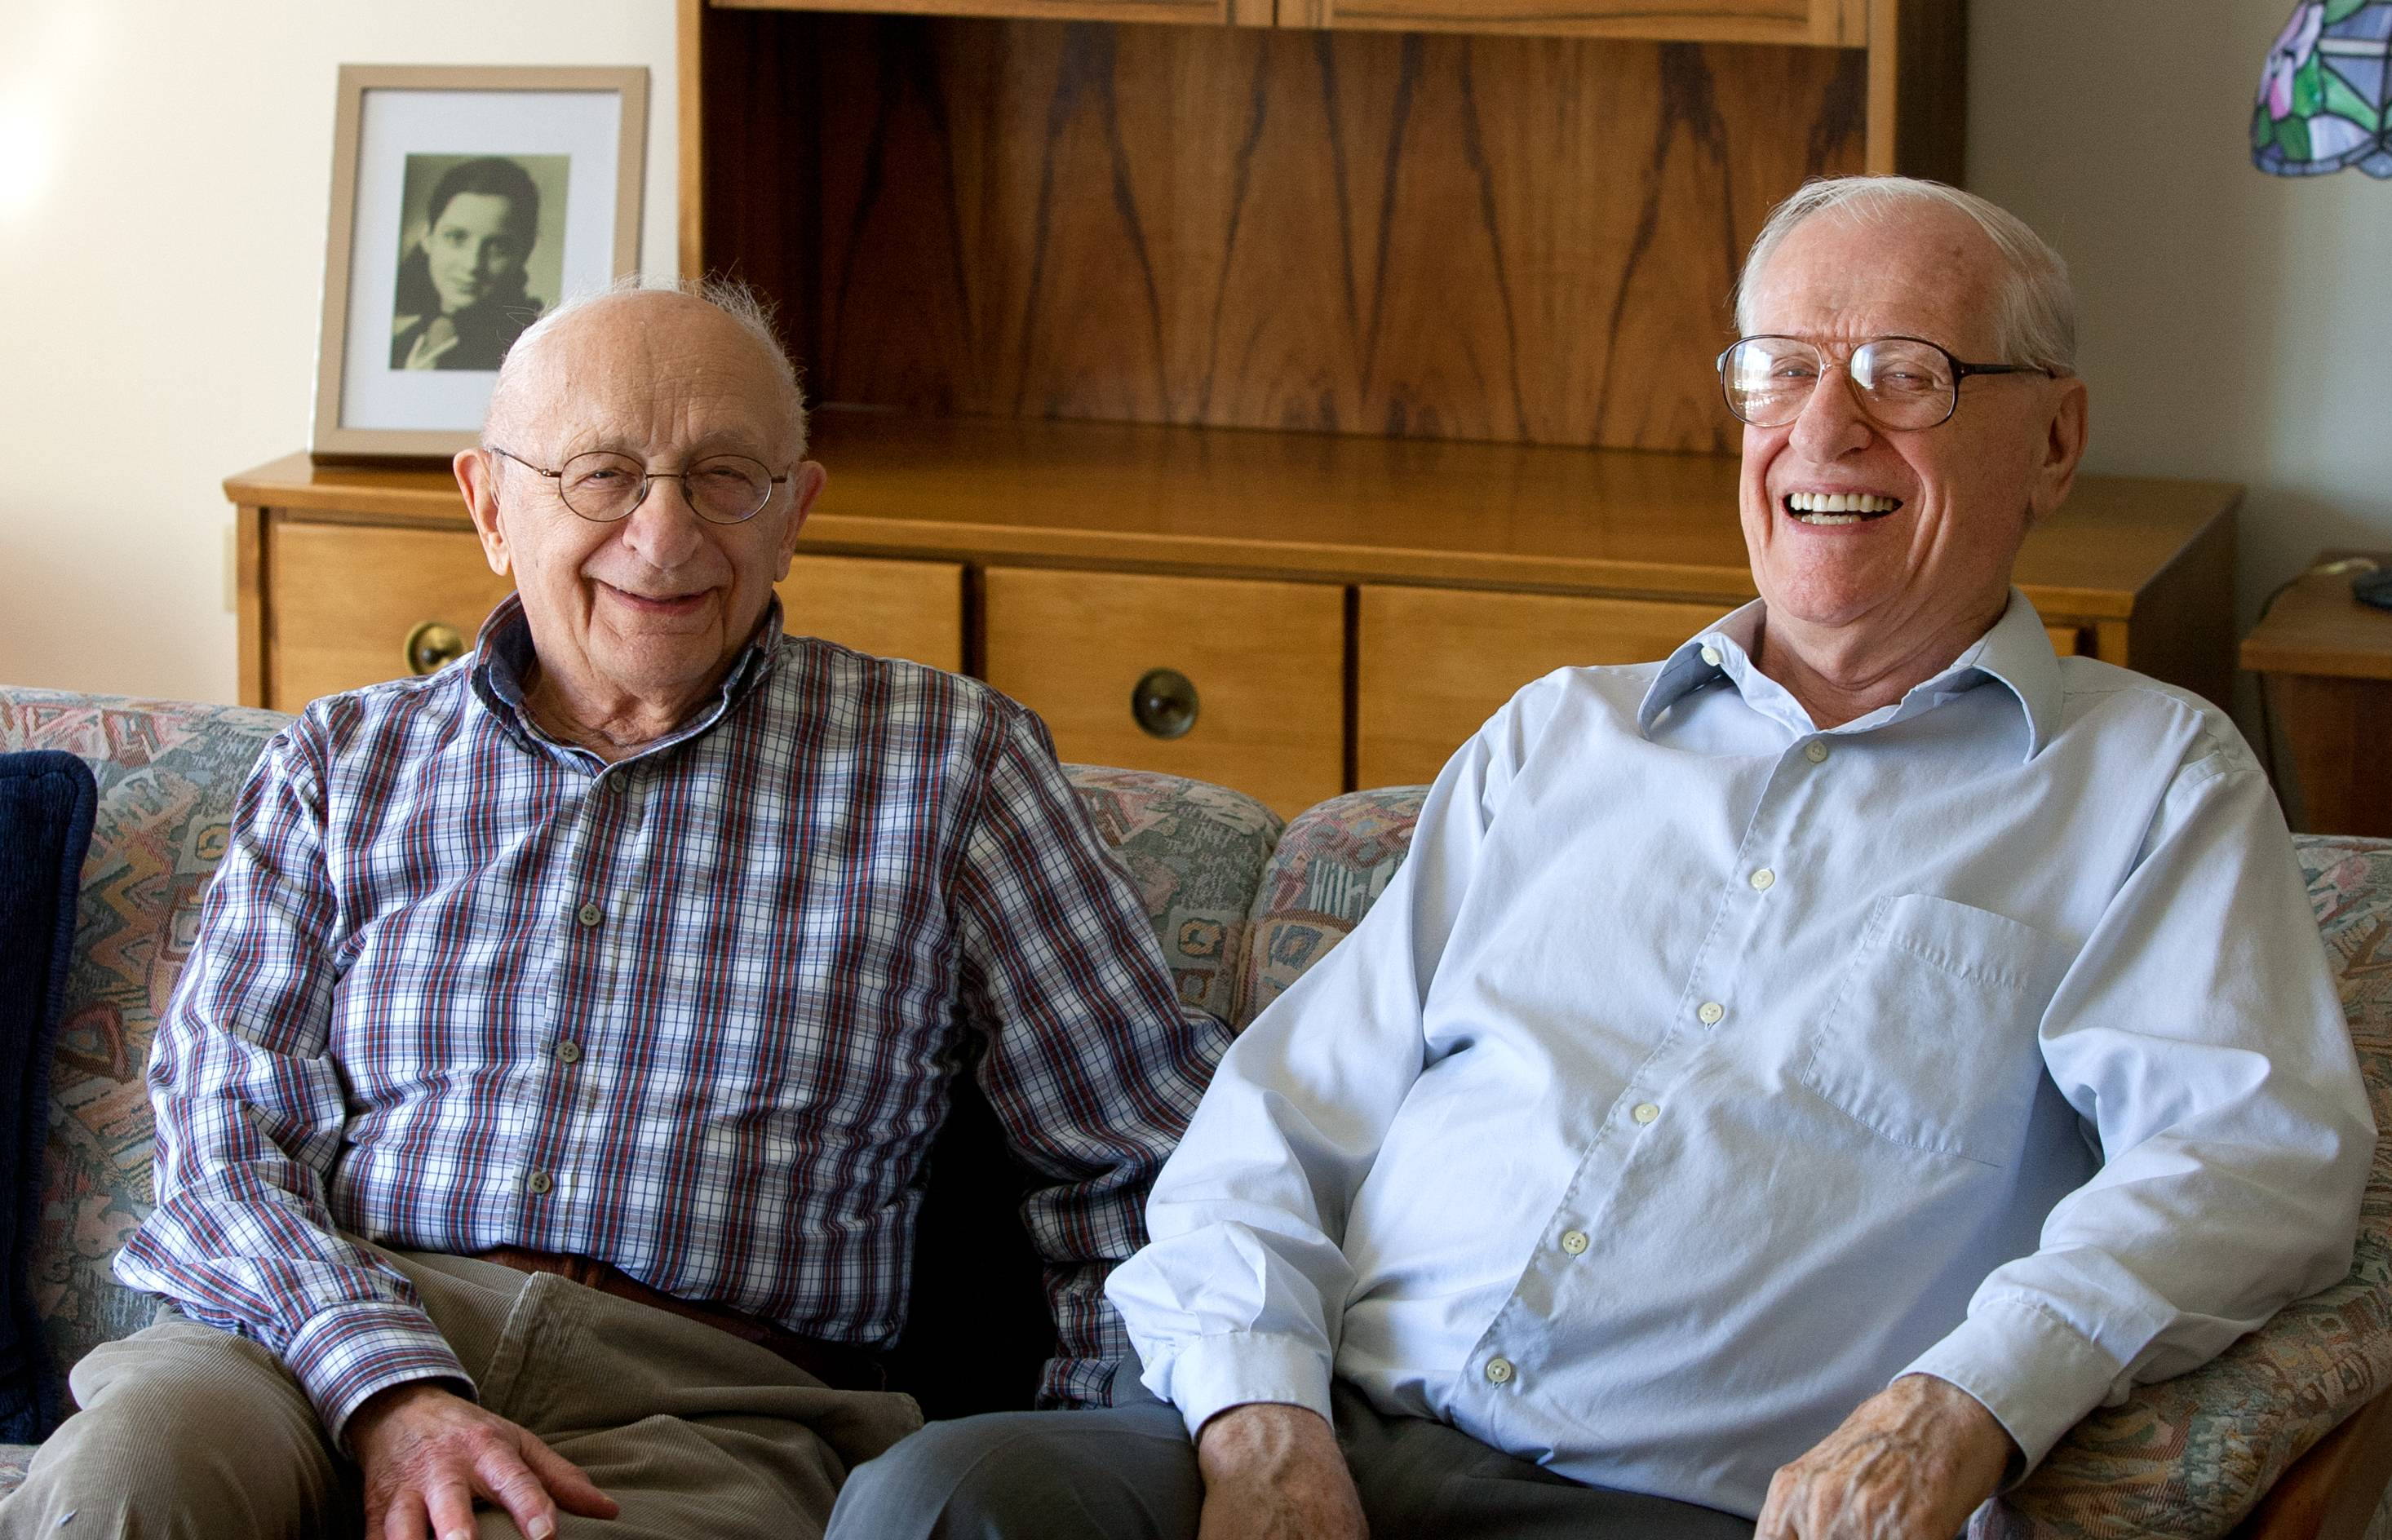 As residents of the Beacon Hill senior community in Lombard, Charles Luner, left, and Eric Blaustein built a friendship around the concentration camp experience shared by Blaustein and Luner's late wife, Gerda.